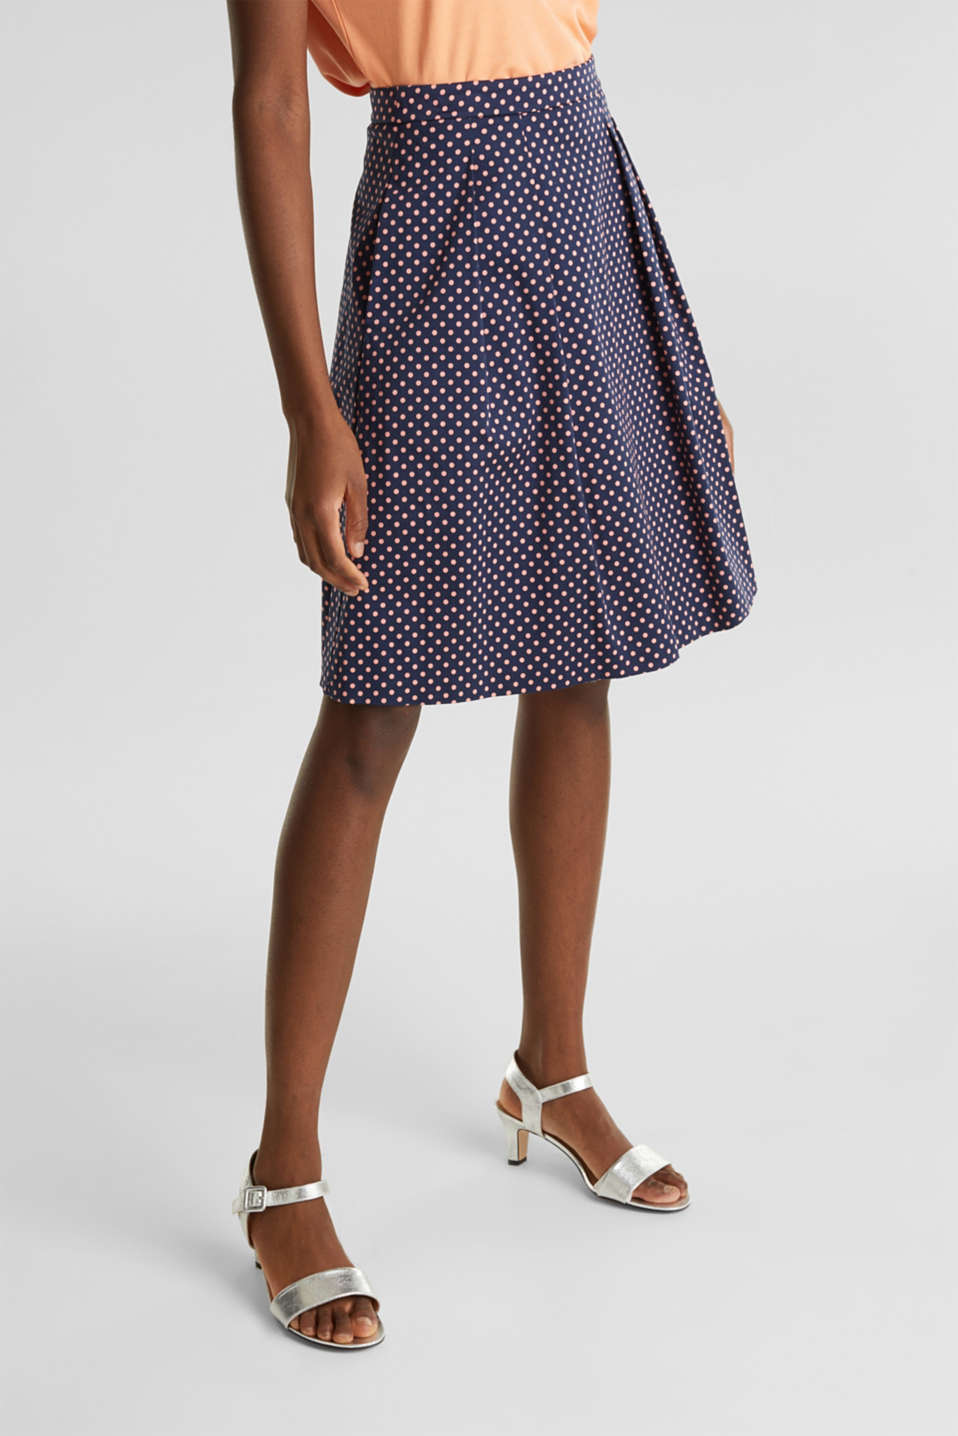 Esprit - Satined polka dot skirt with stretch